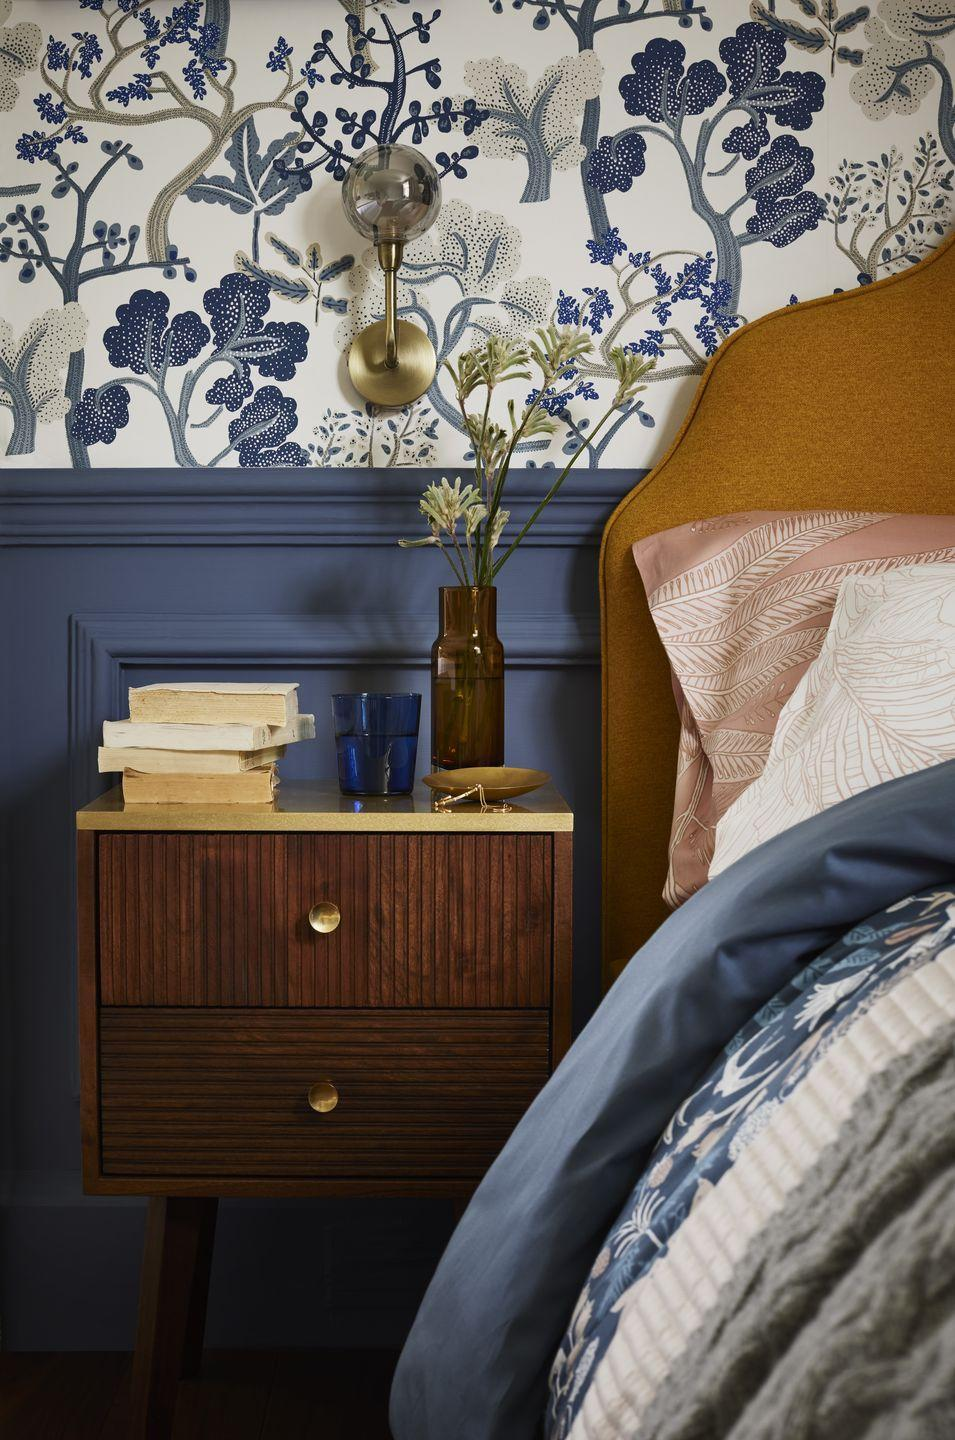 """<p>When investing in pieces of furniture, John Lewis explain the importance of buying items that can be handed down from one generation to the next. </p><p>""""Think paints in chalky tones, soft furnishings in florals and<br>stripes, and lovingly crafted furniture and accessories that could become future heirlooms,"""" the team add. <br></p>"""